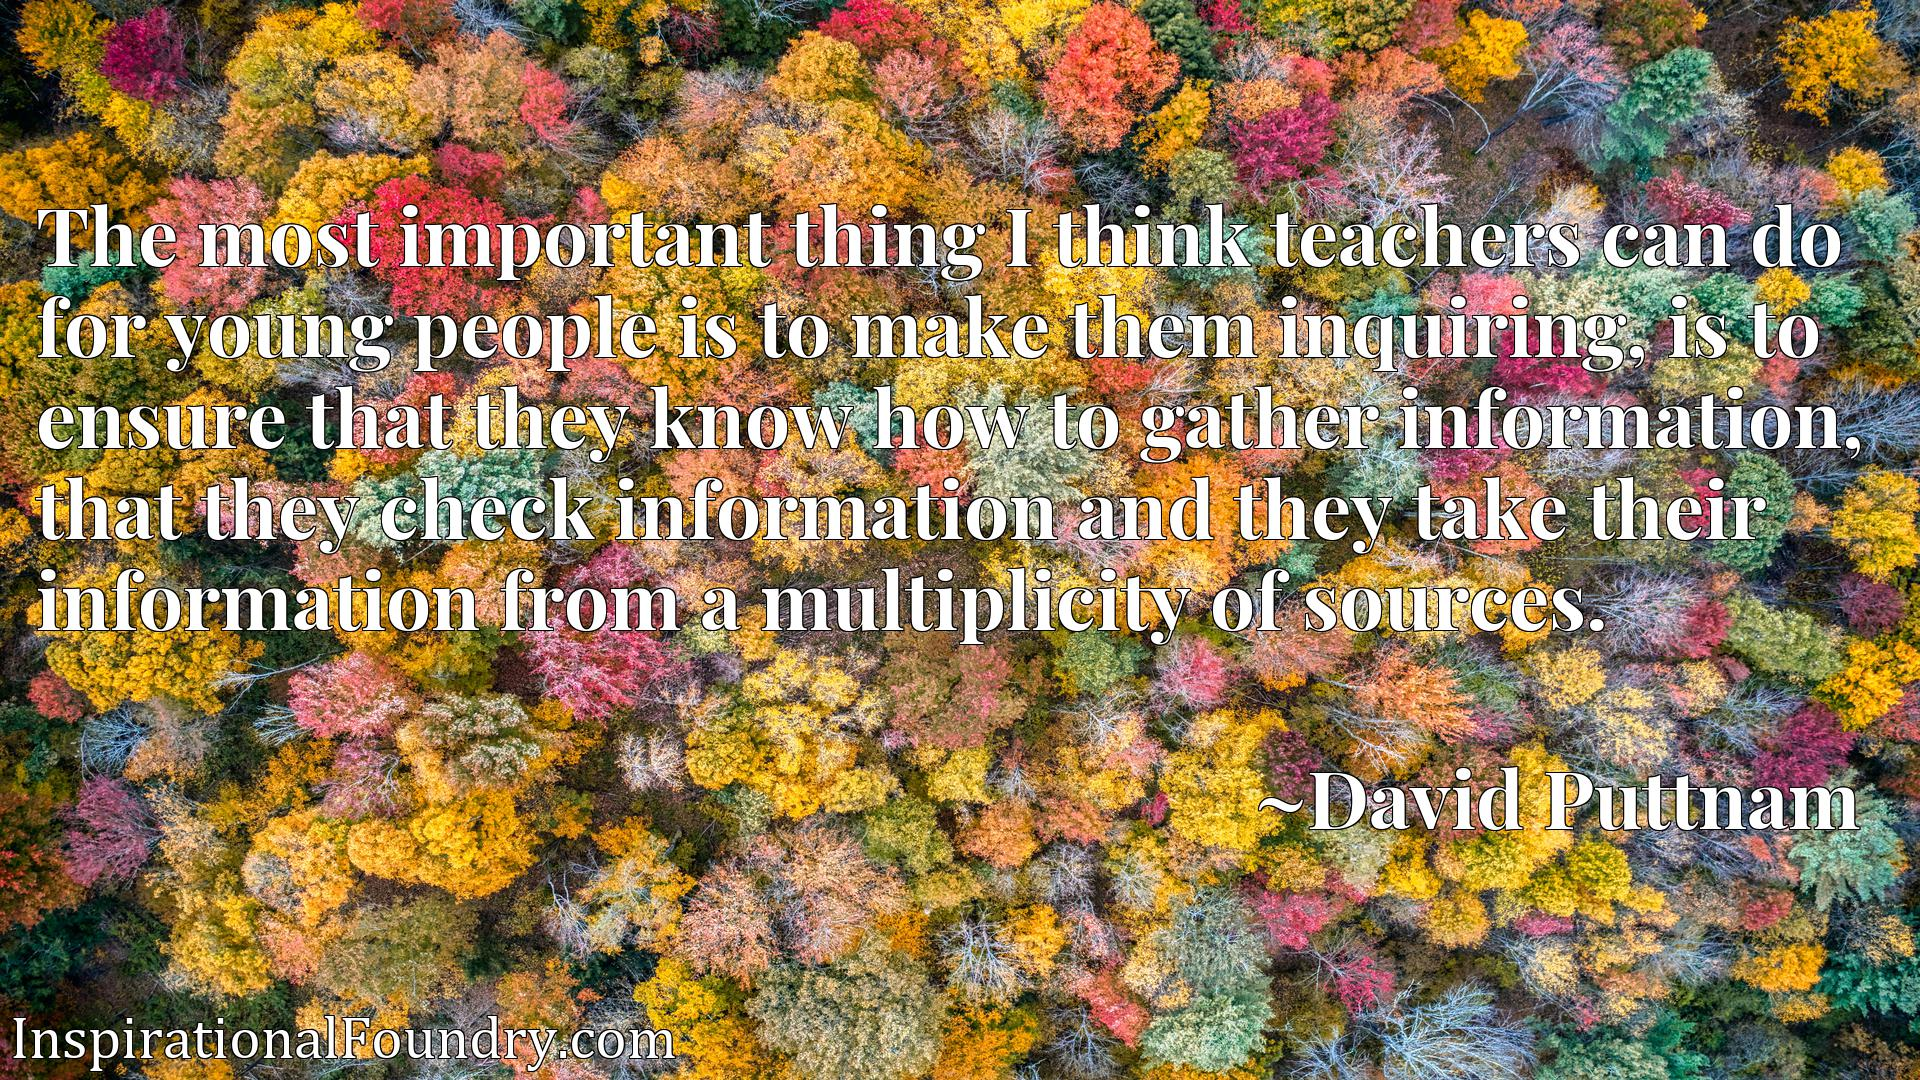 The most important thing I think teachers can do for young people is to make them inquiring, is to ensure that they know how to gather information, that they check information and they take their information from a multiplicity of sources.